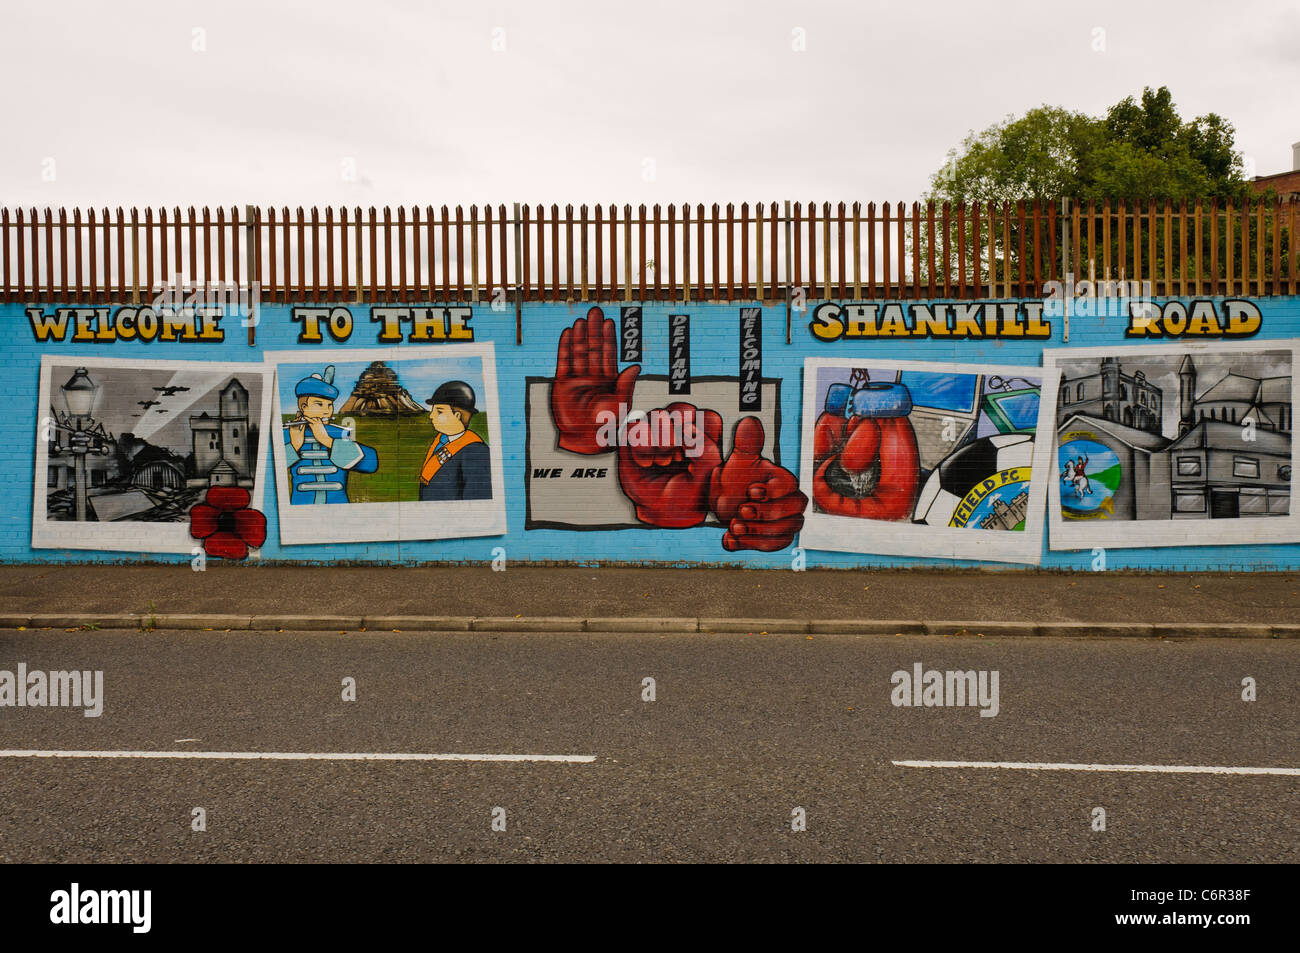 Mural welcoming vistitors to the Shankill Road. 'We are Proud, Defiant, Welcoming' - Stock Image